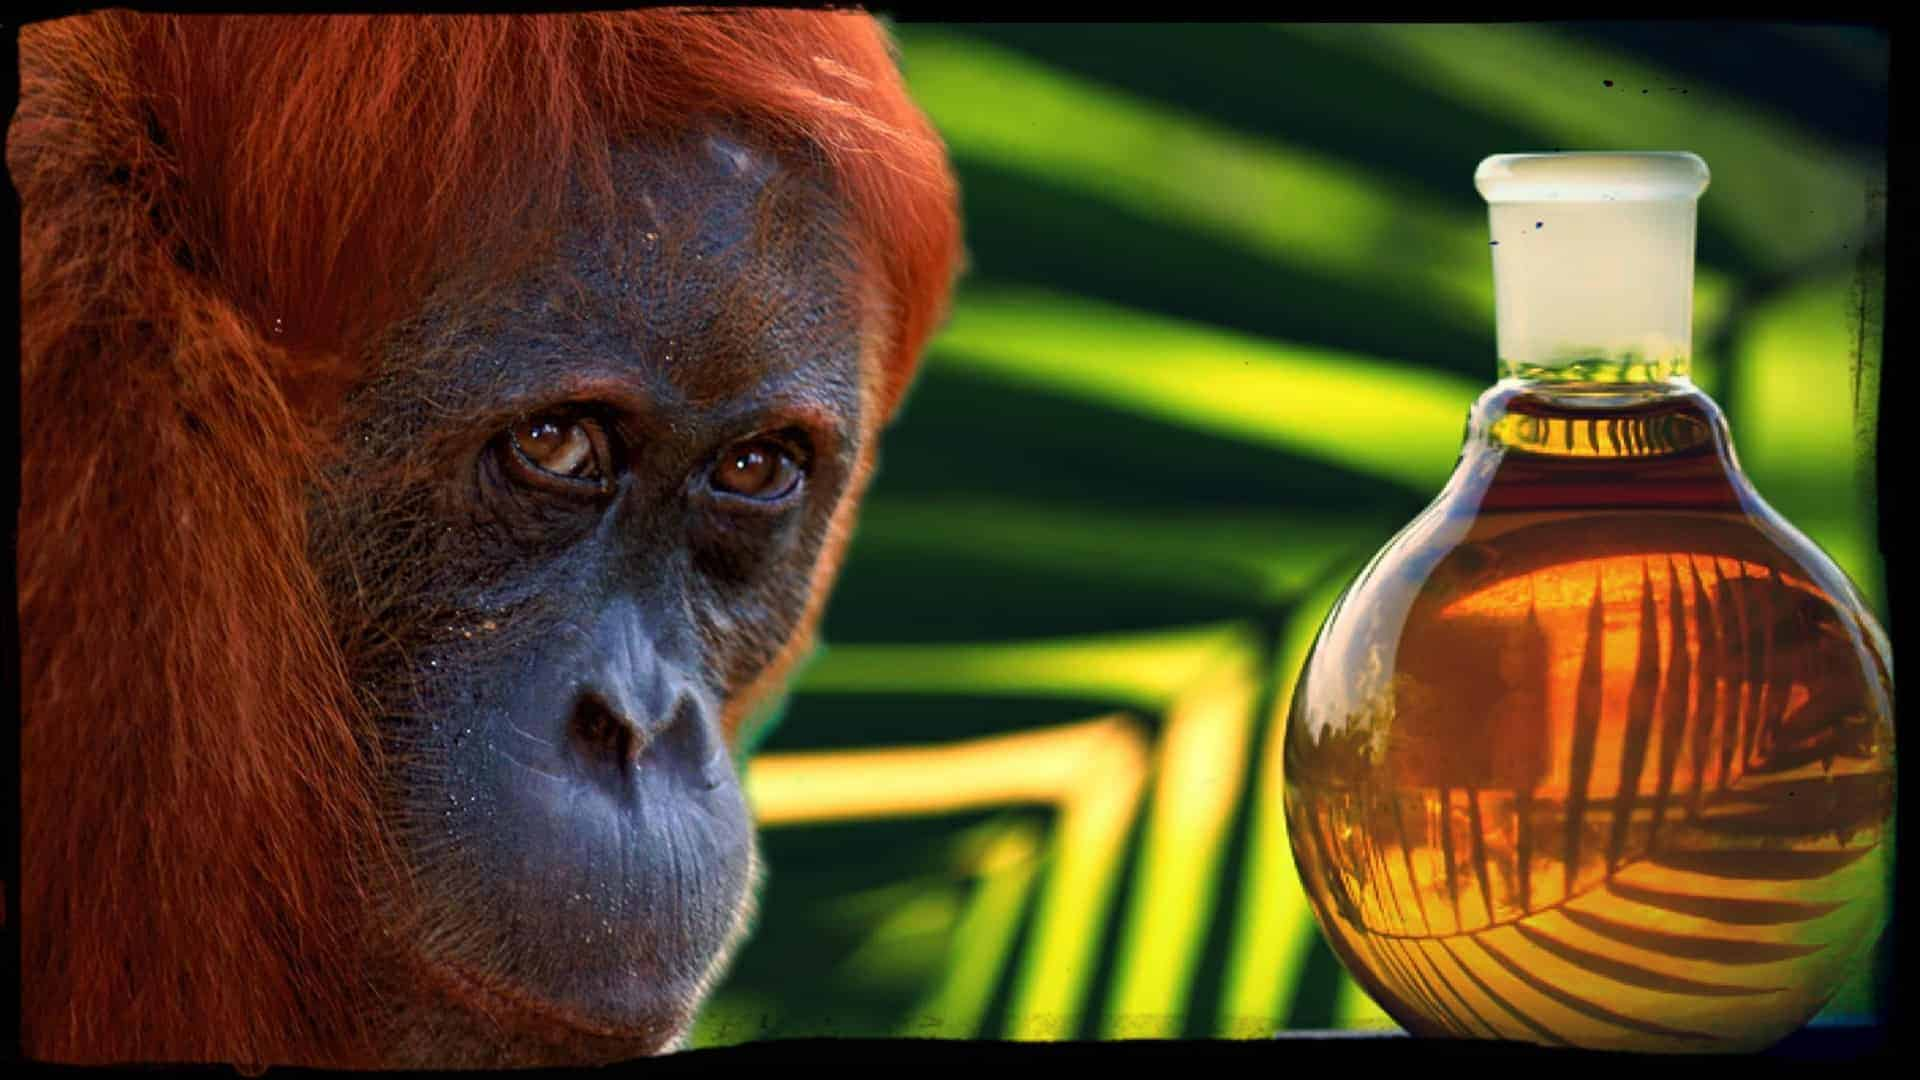 A close of the face of a beautiful orangutan is shown next to a glass bottle of palm oil.